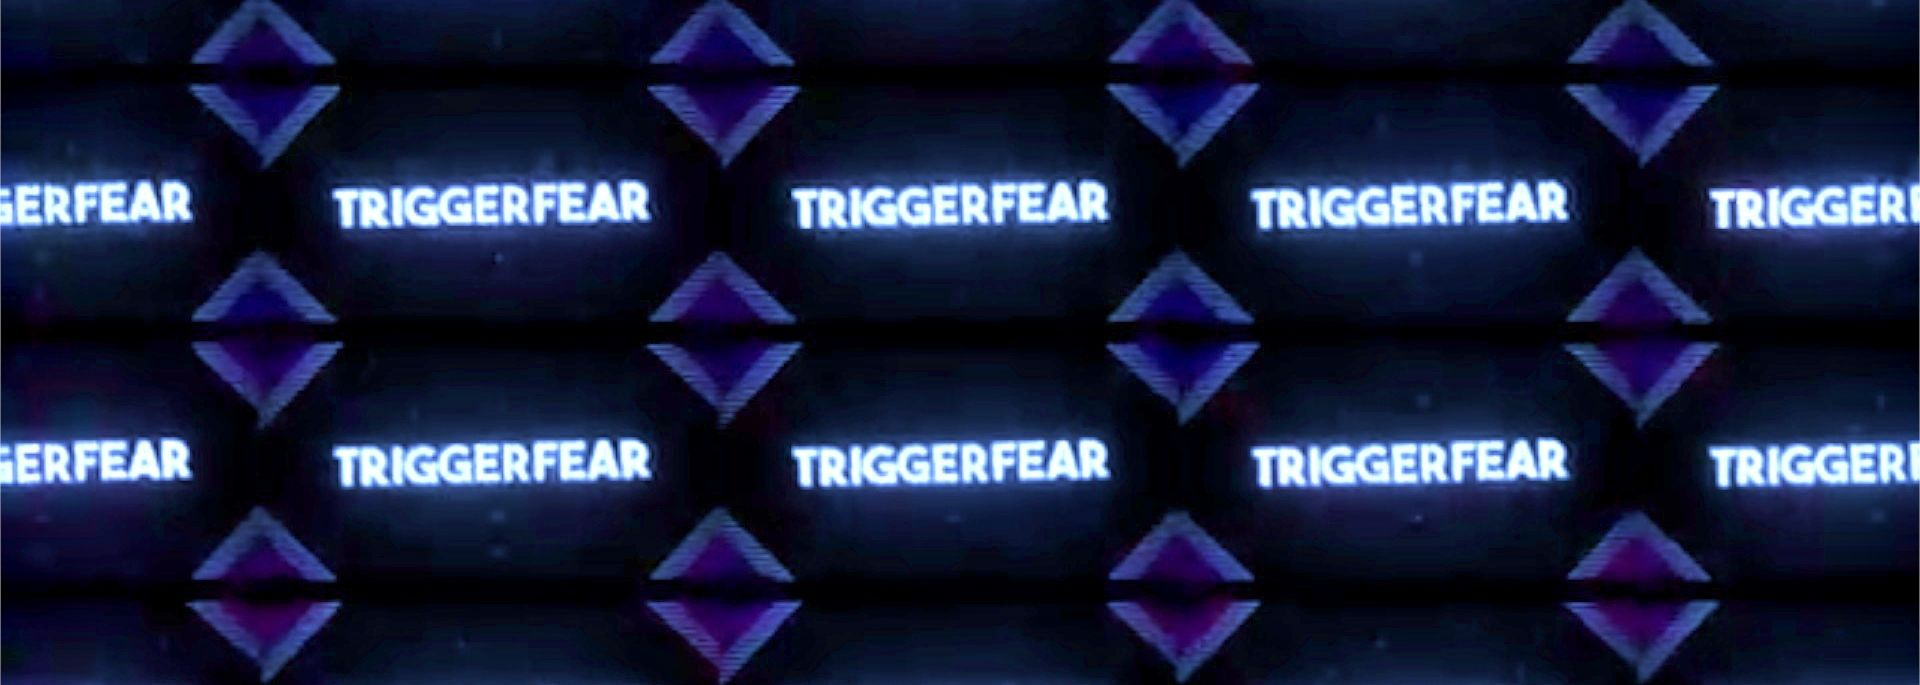 Trigger Fear channel